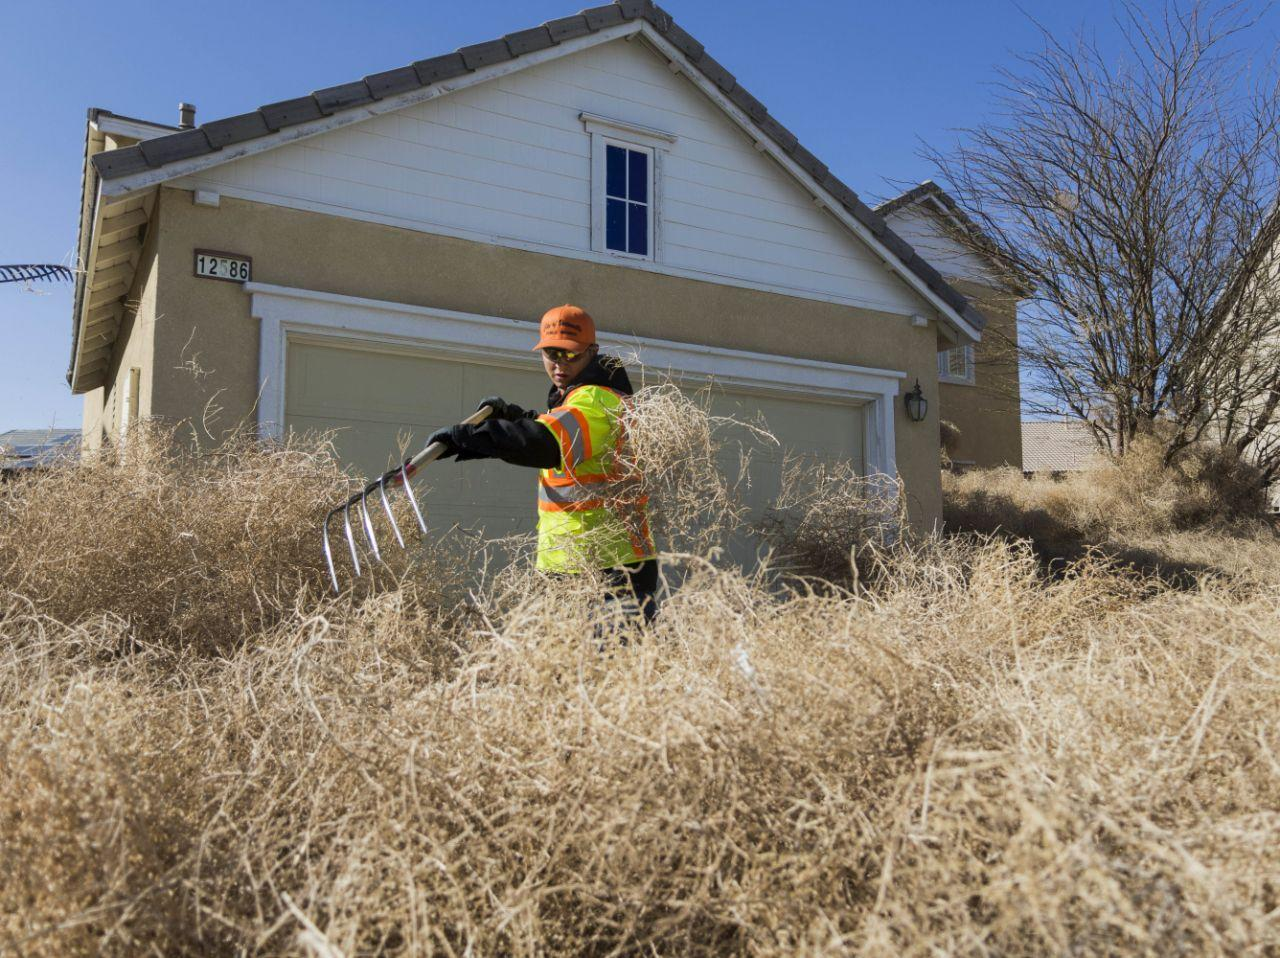 Some Californians are having a frightening invasion of tumbleweeds